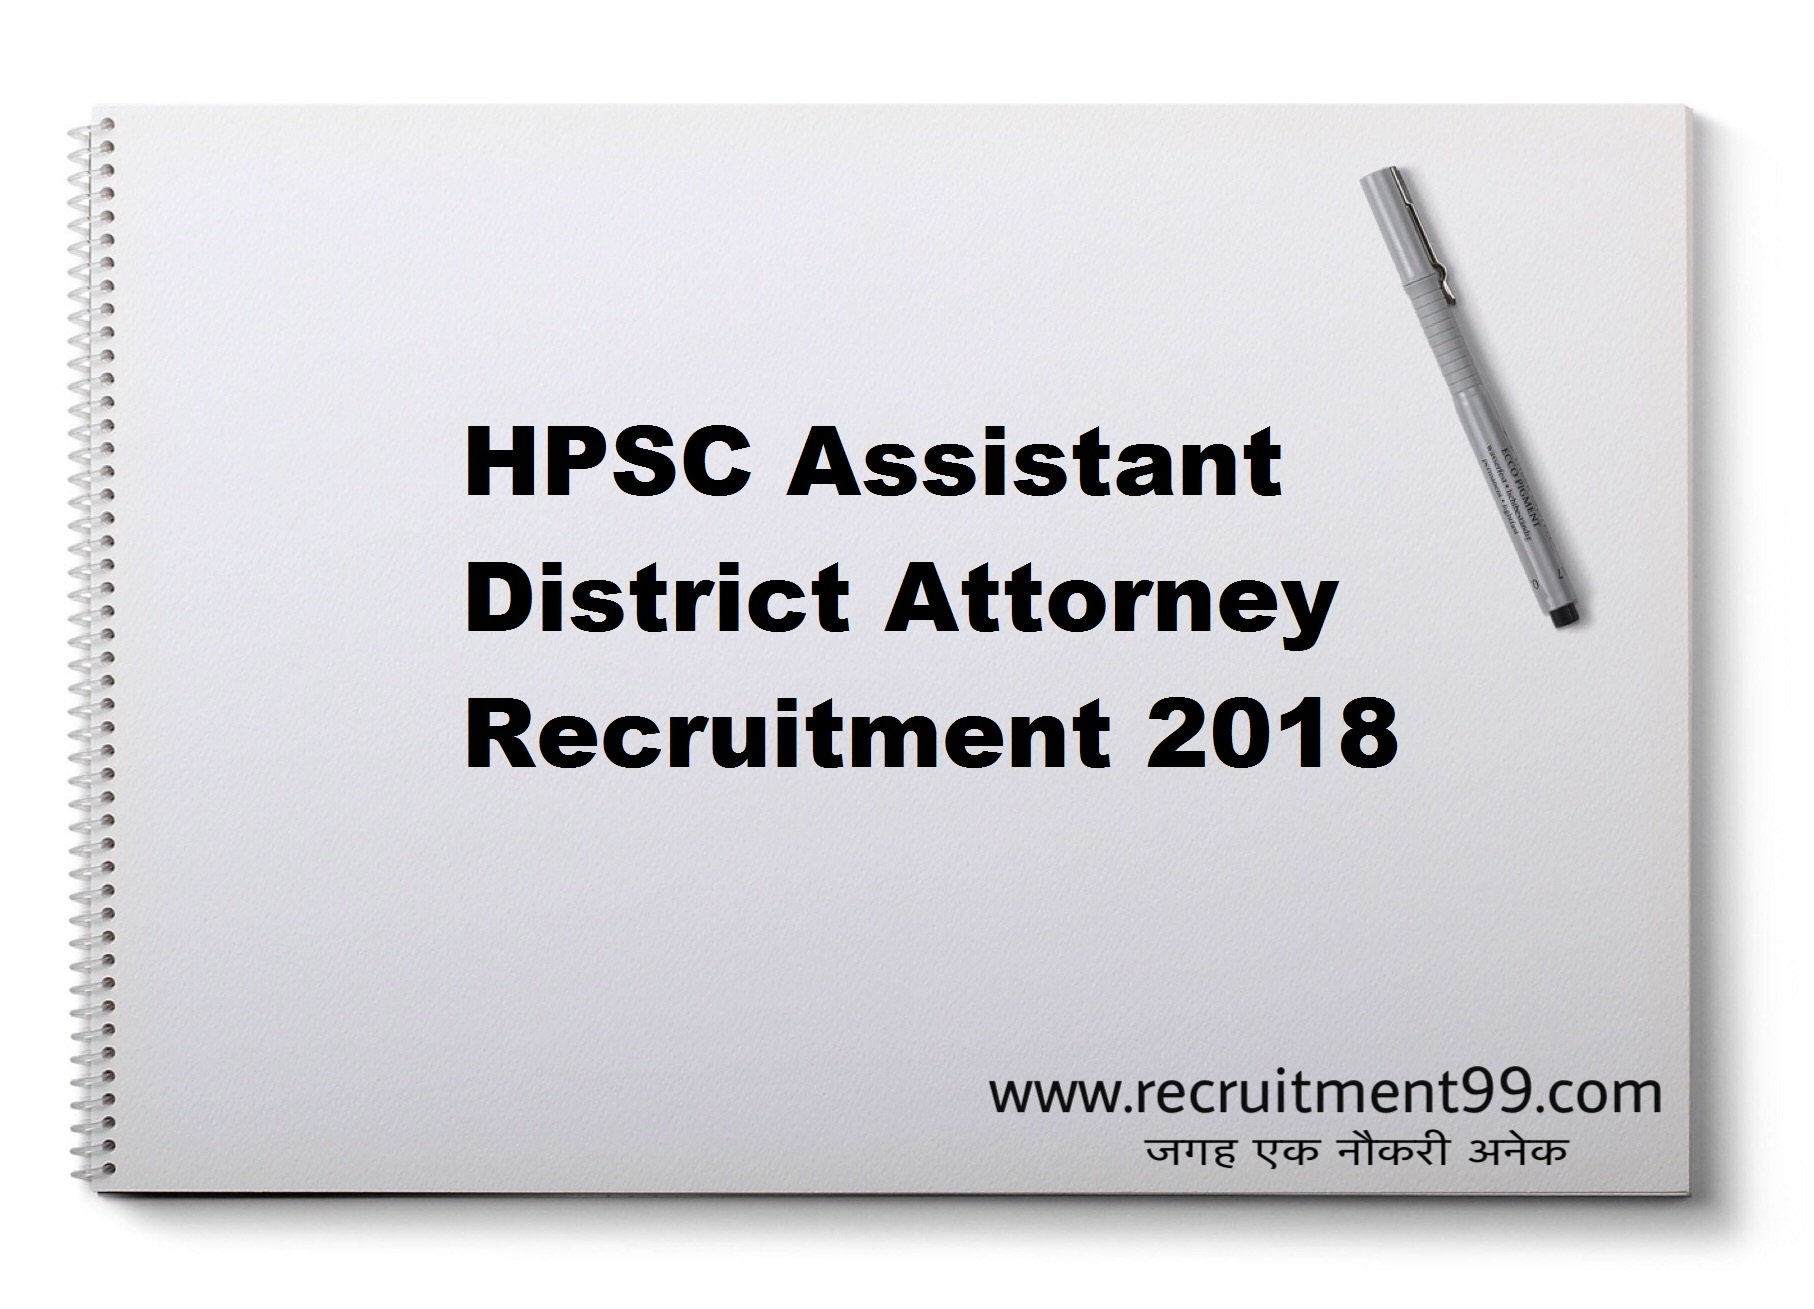 HPSC Assistant District Attorney Recruitment Admit Card Result 2018